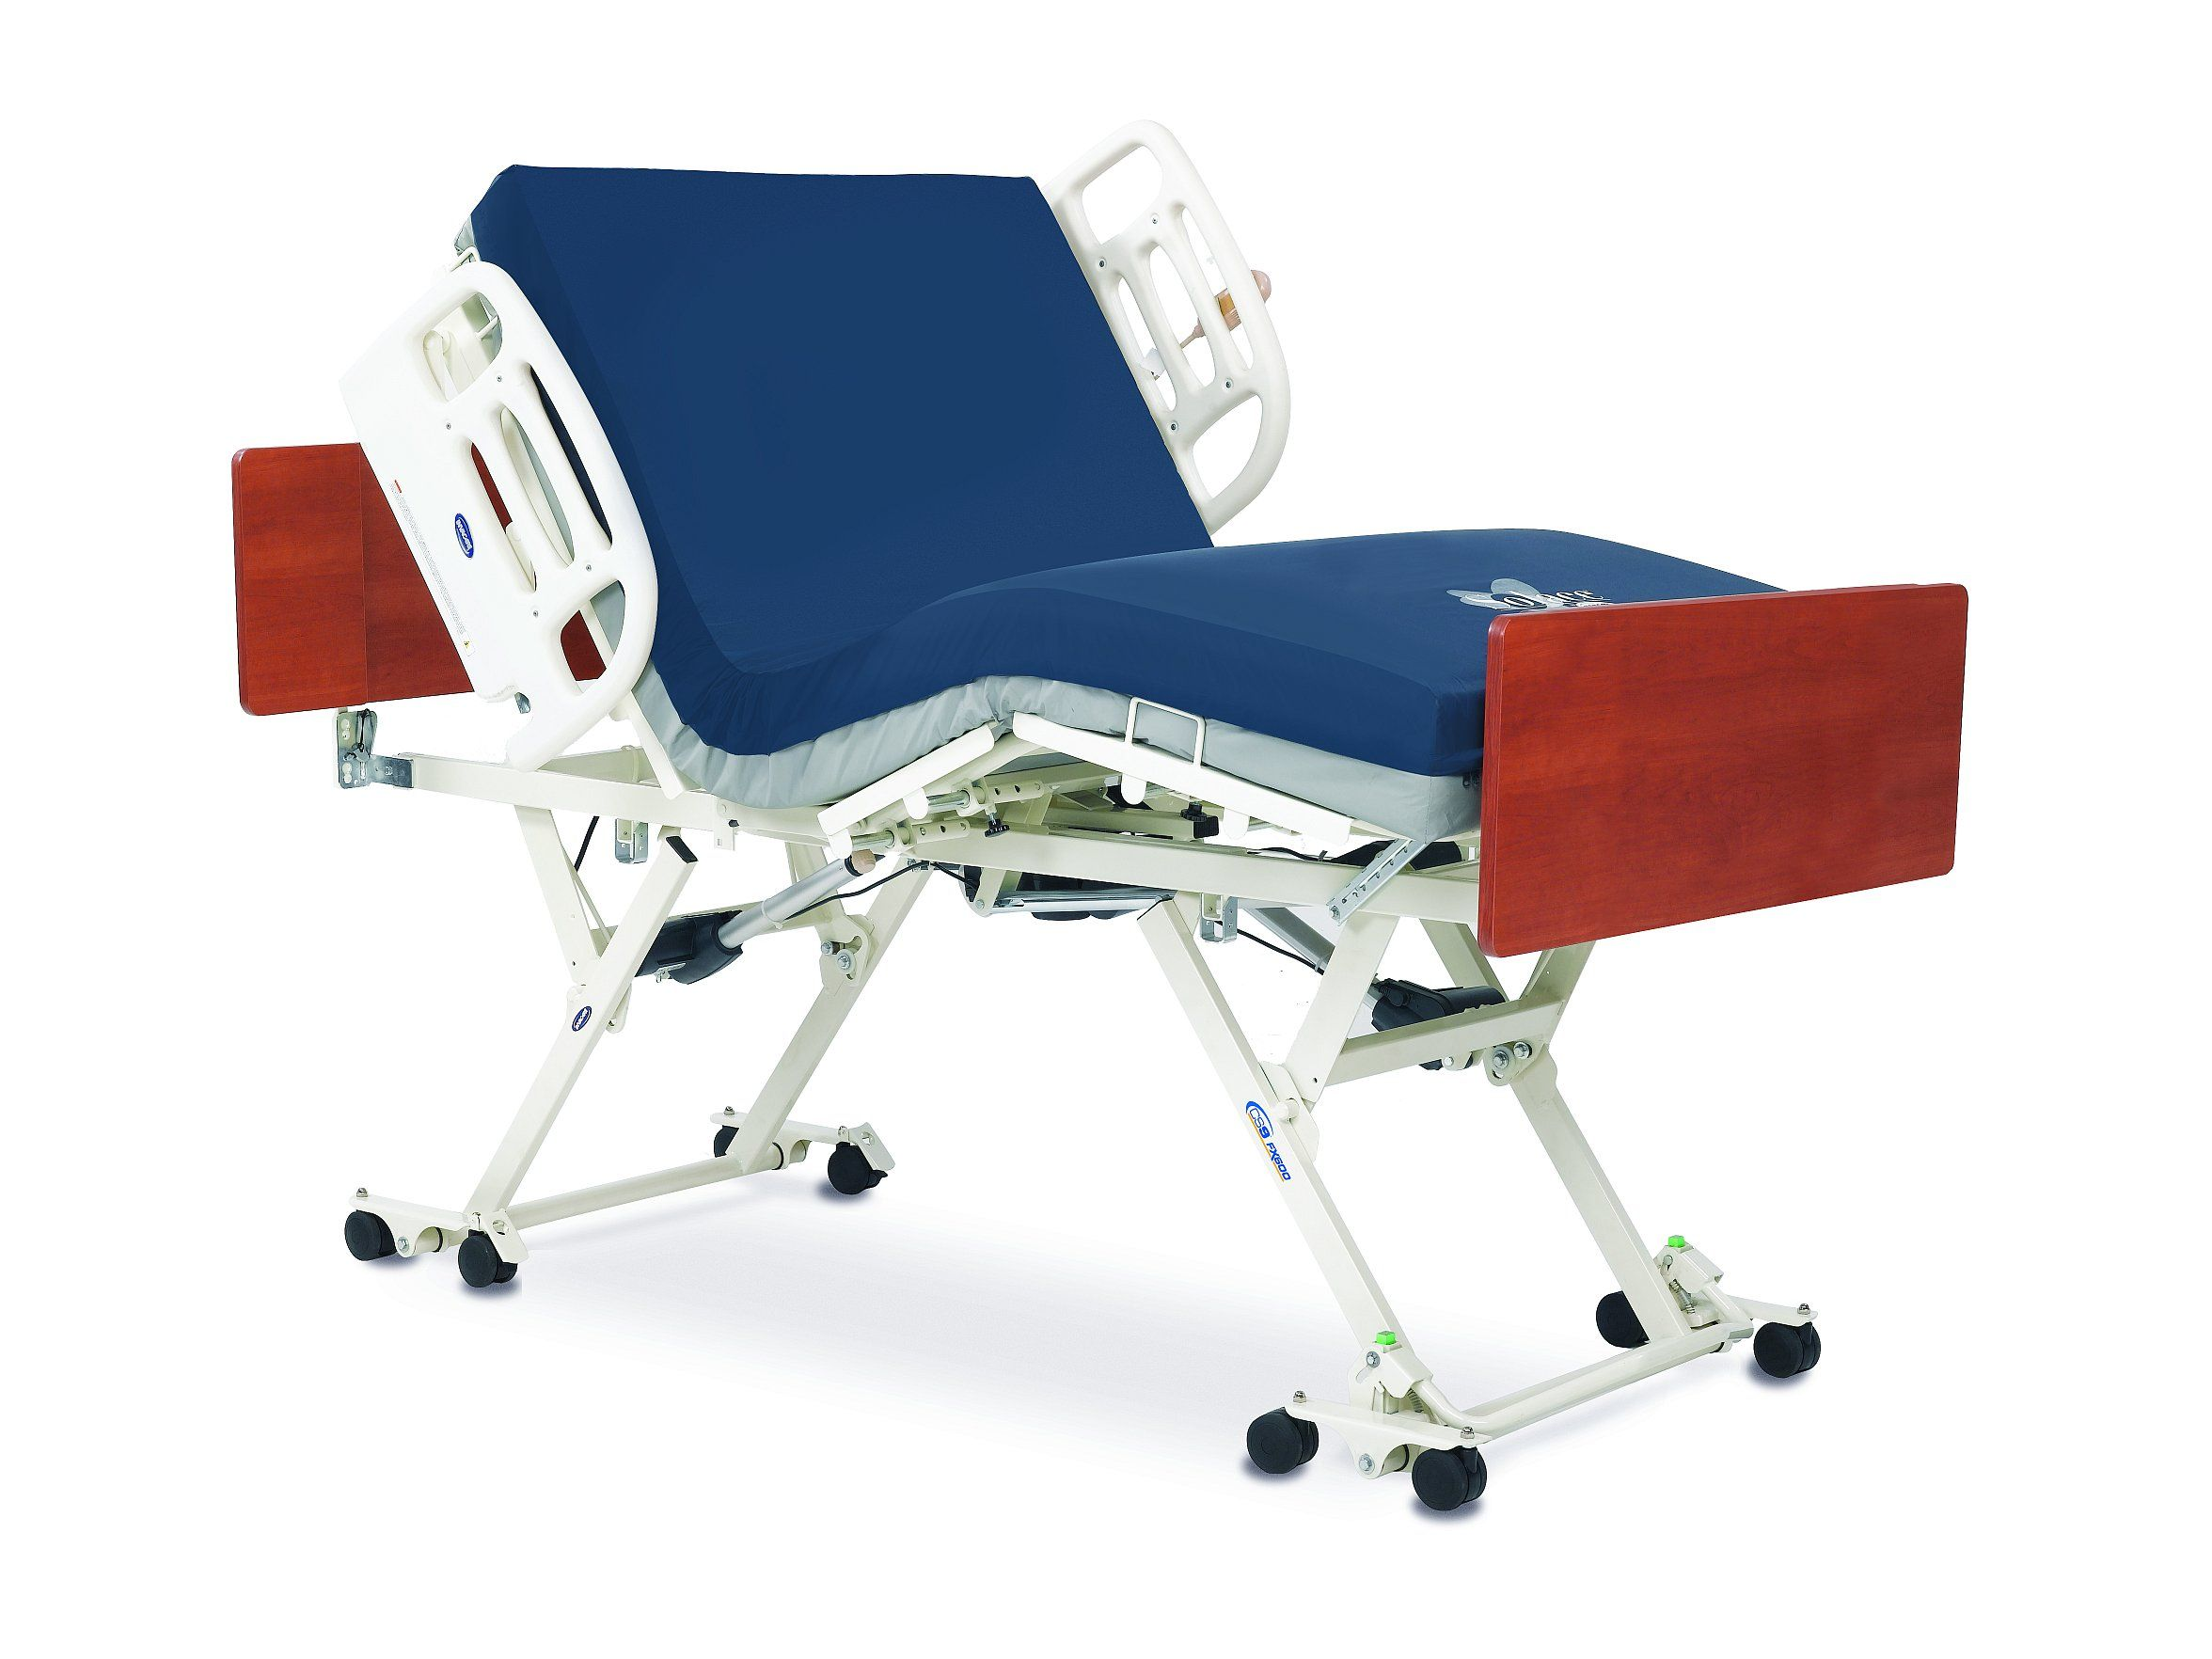 Invacare CS9 FX600 high low height adjustable full